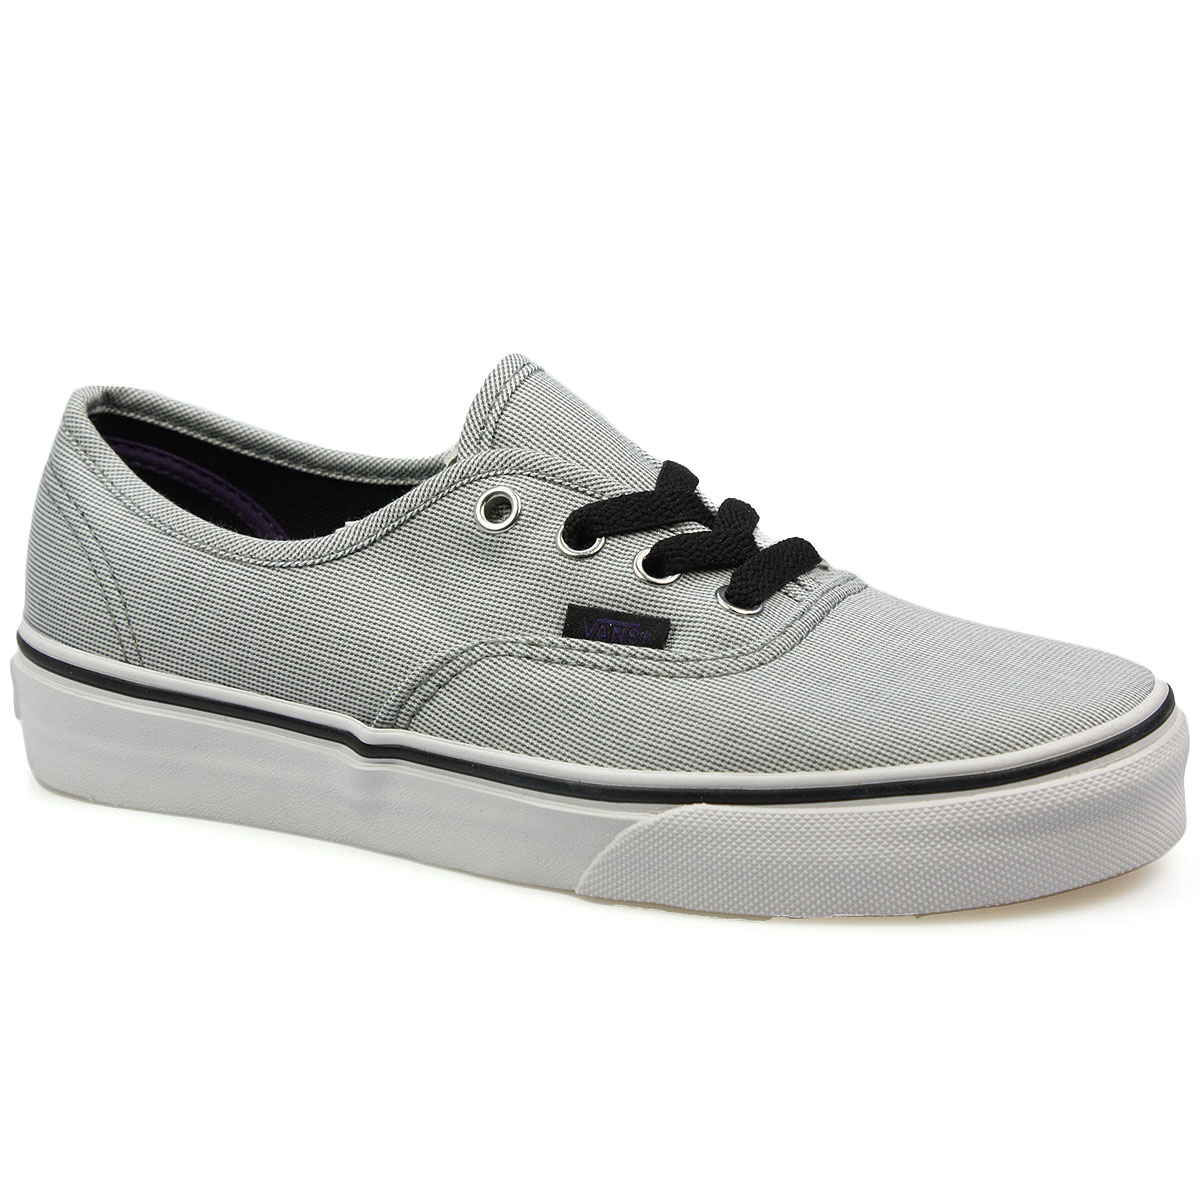 mens vans cheap | Vans Shoes India